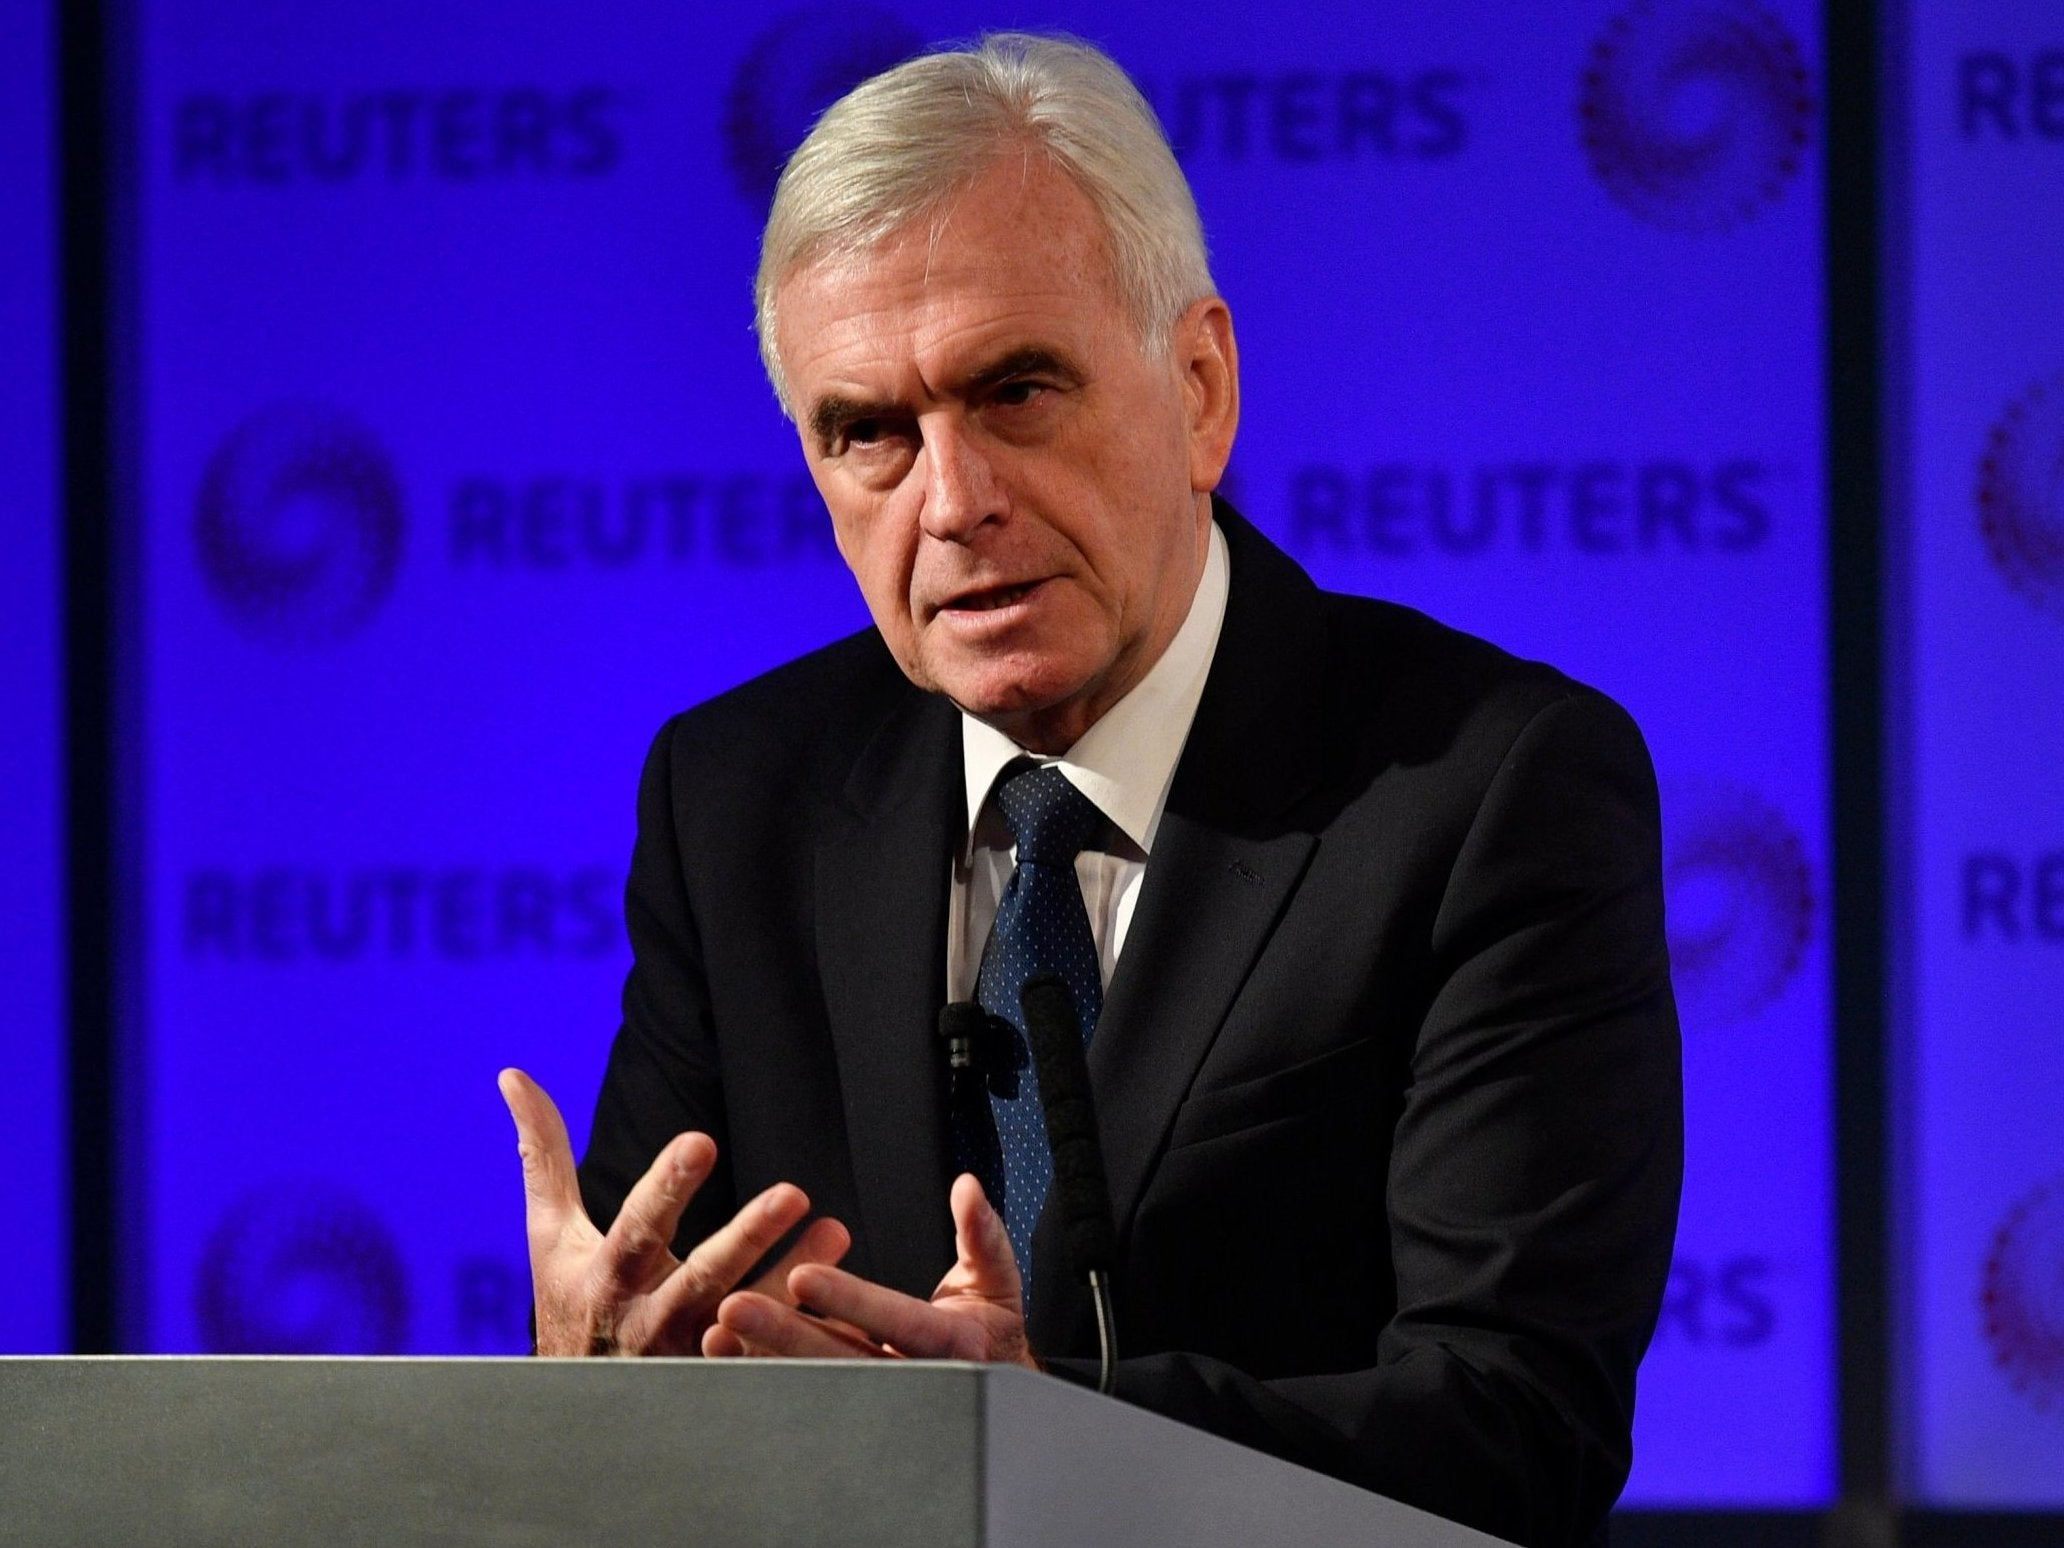 Labor's John McDonnell tells Queen: Let us form a government if Theresa May's Brexit deal voted down